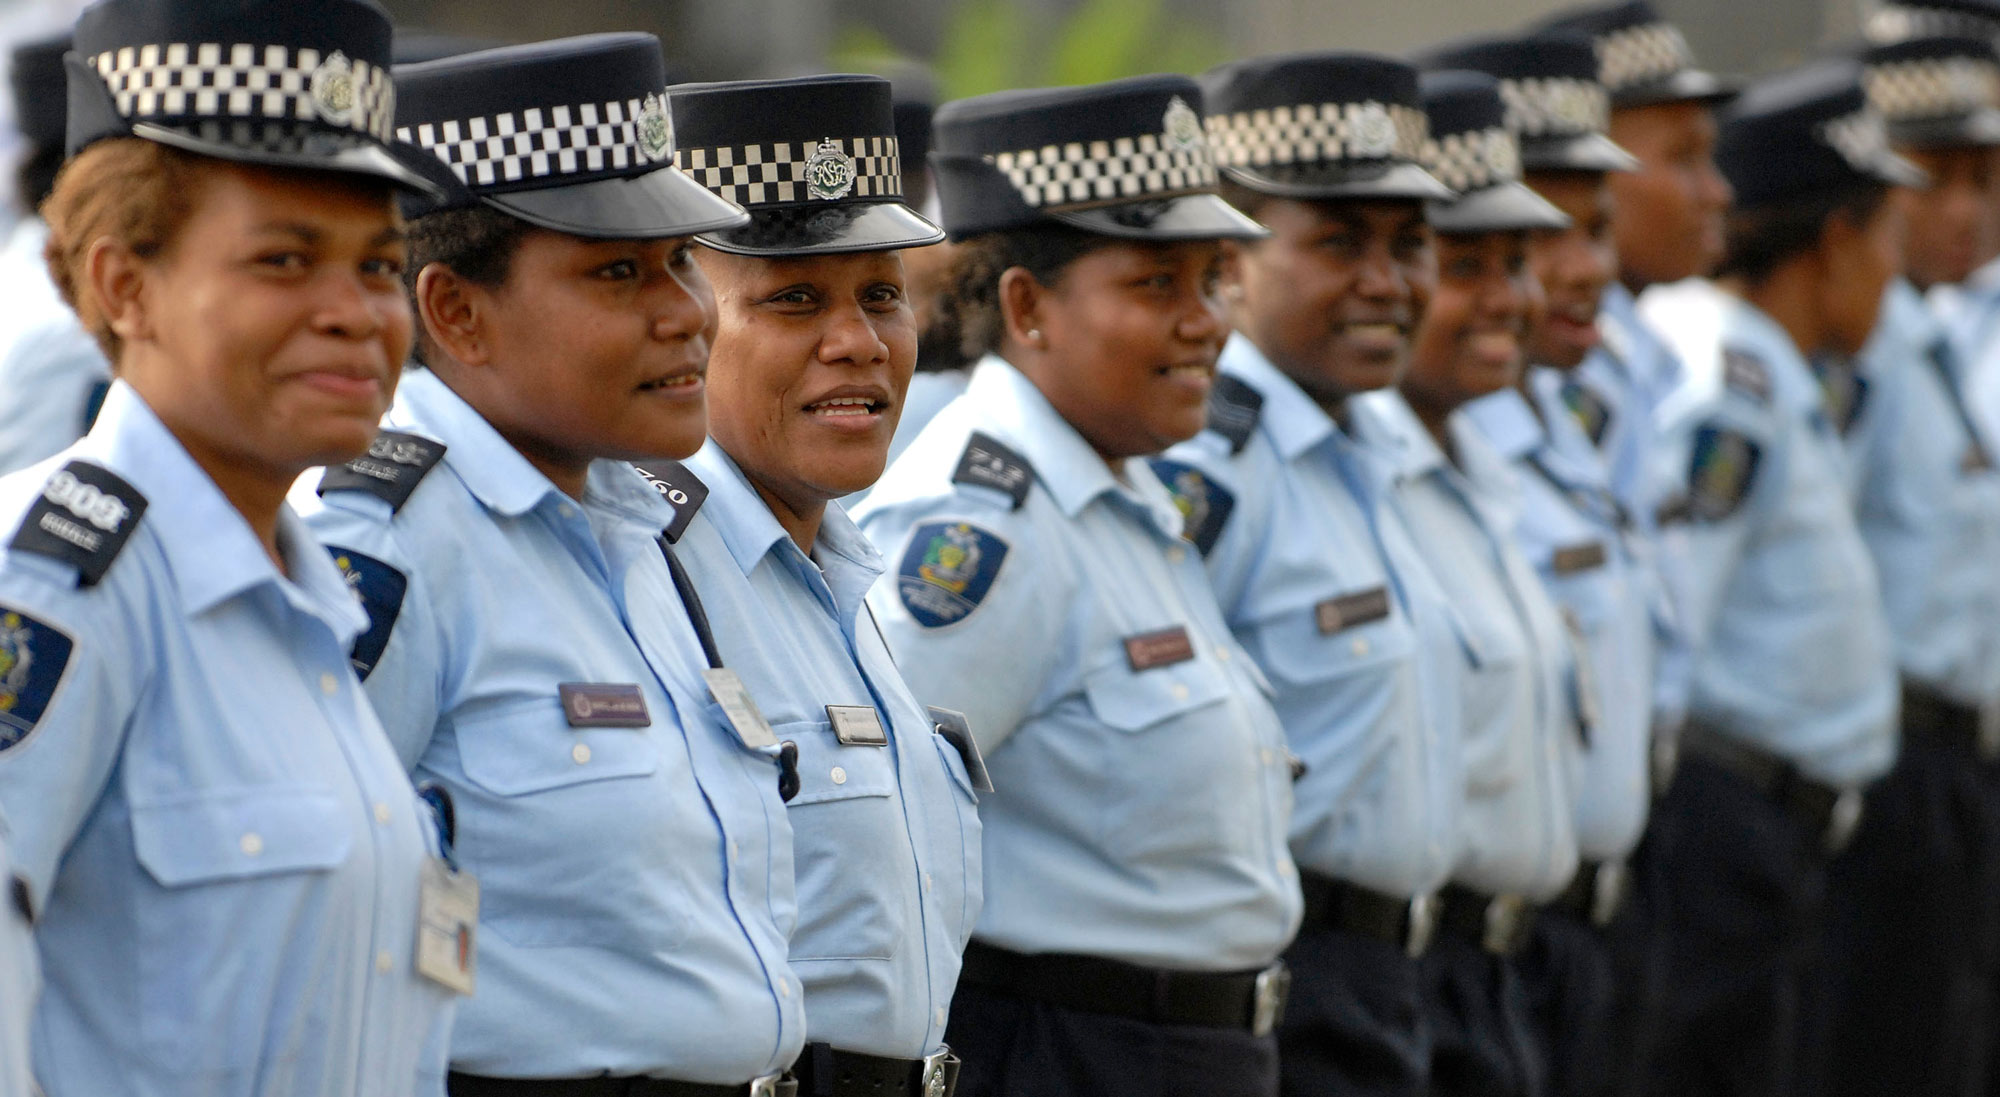 Women from the Royal Solomon Islands Police Force (RSIPF). Photo: DFAT (flickr)